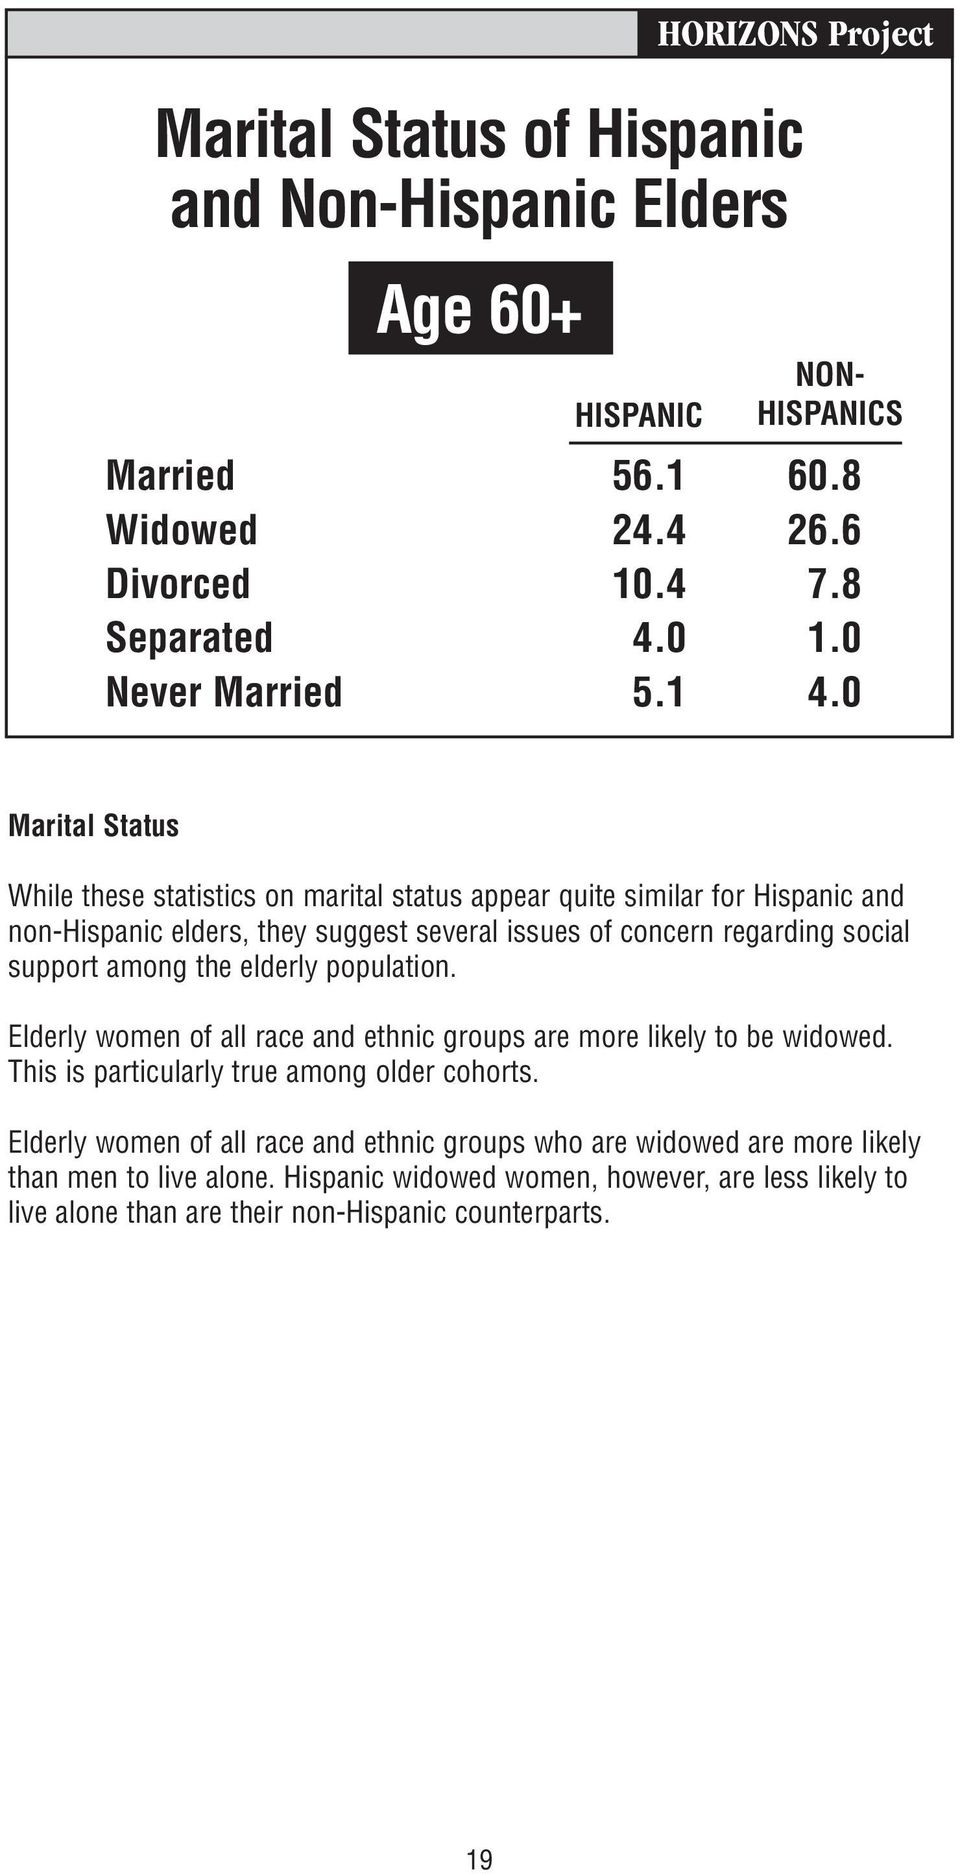 support among the elderly population. Elderly women of all race and ethnic groups are more likely to be widowed. This is particularly true among older cohorts.